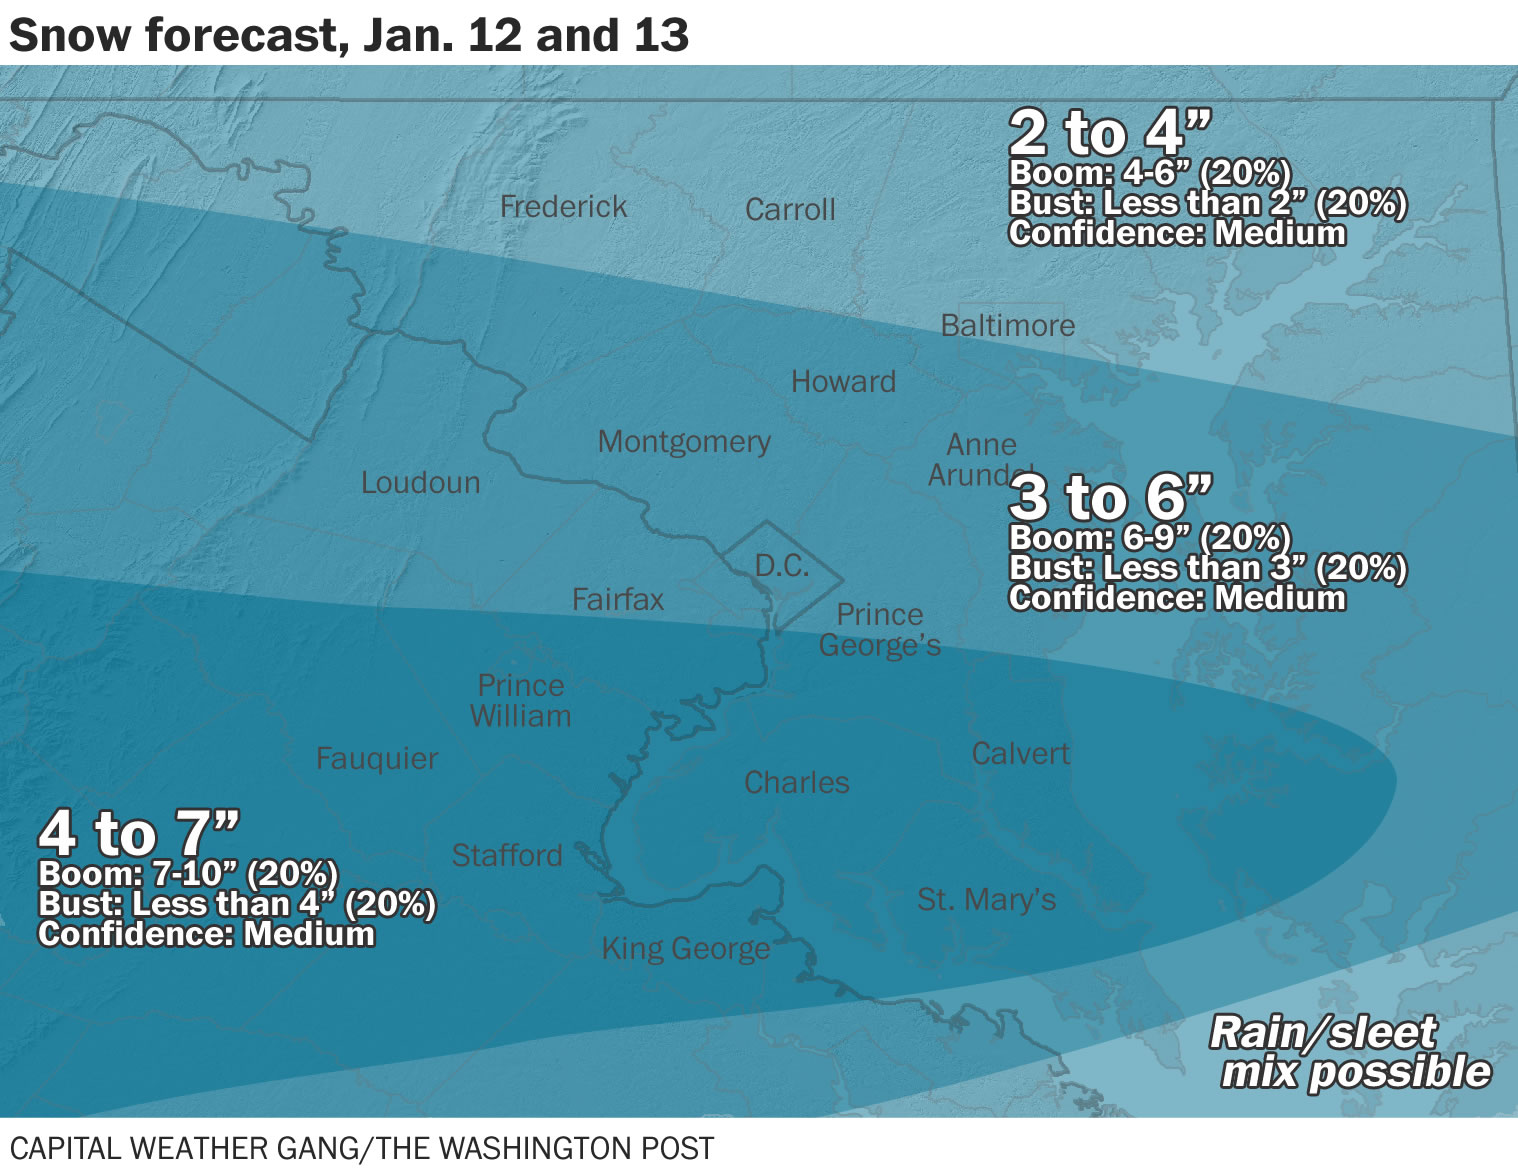 Snow set to blanket Washington region this weekend: Forecast amounts